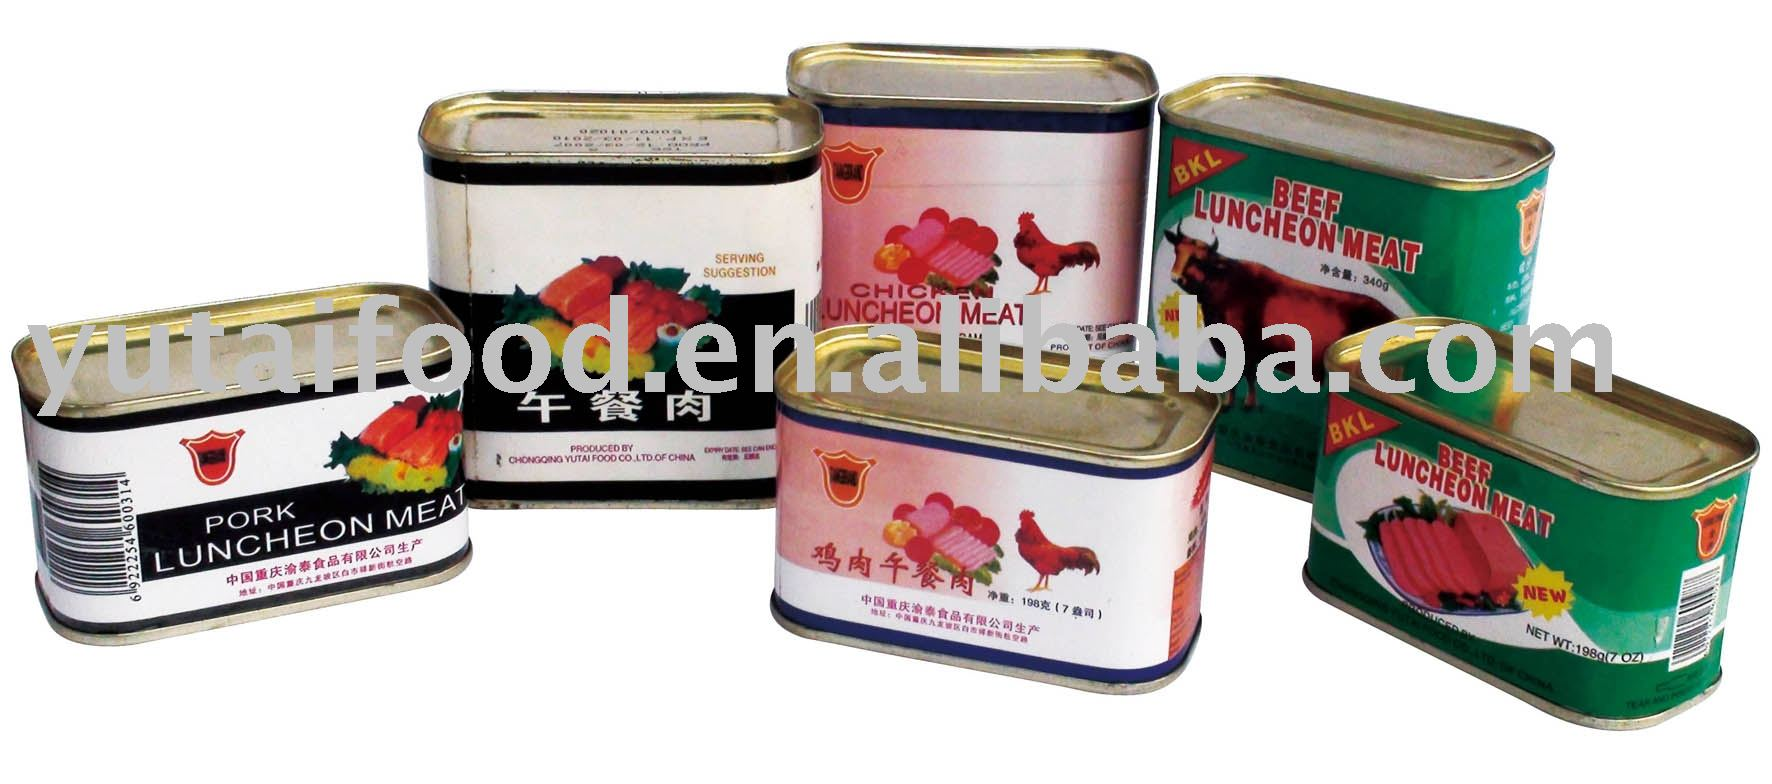 Canned Food / Pork Luncheon Meat, Beef Luncheon Meat, Chicken Luncheon Meat